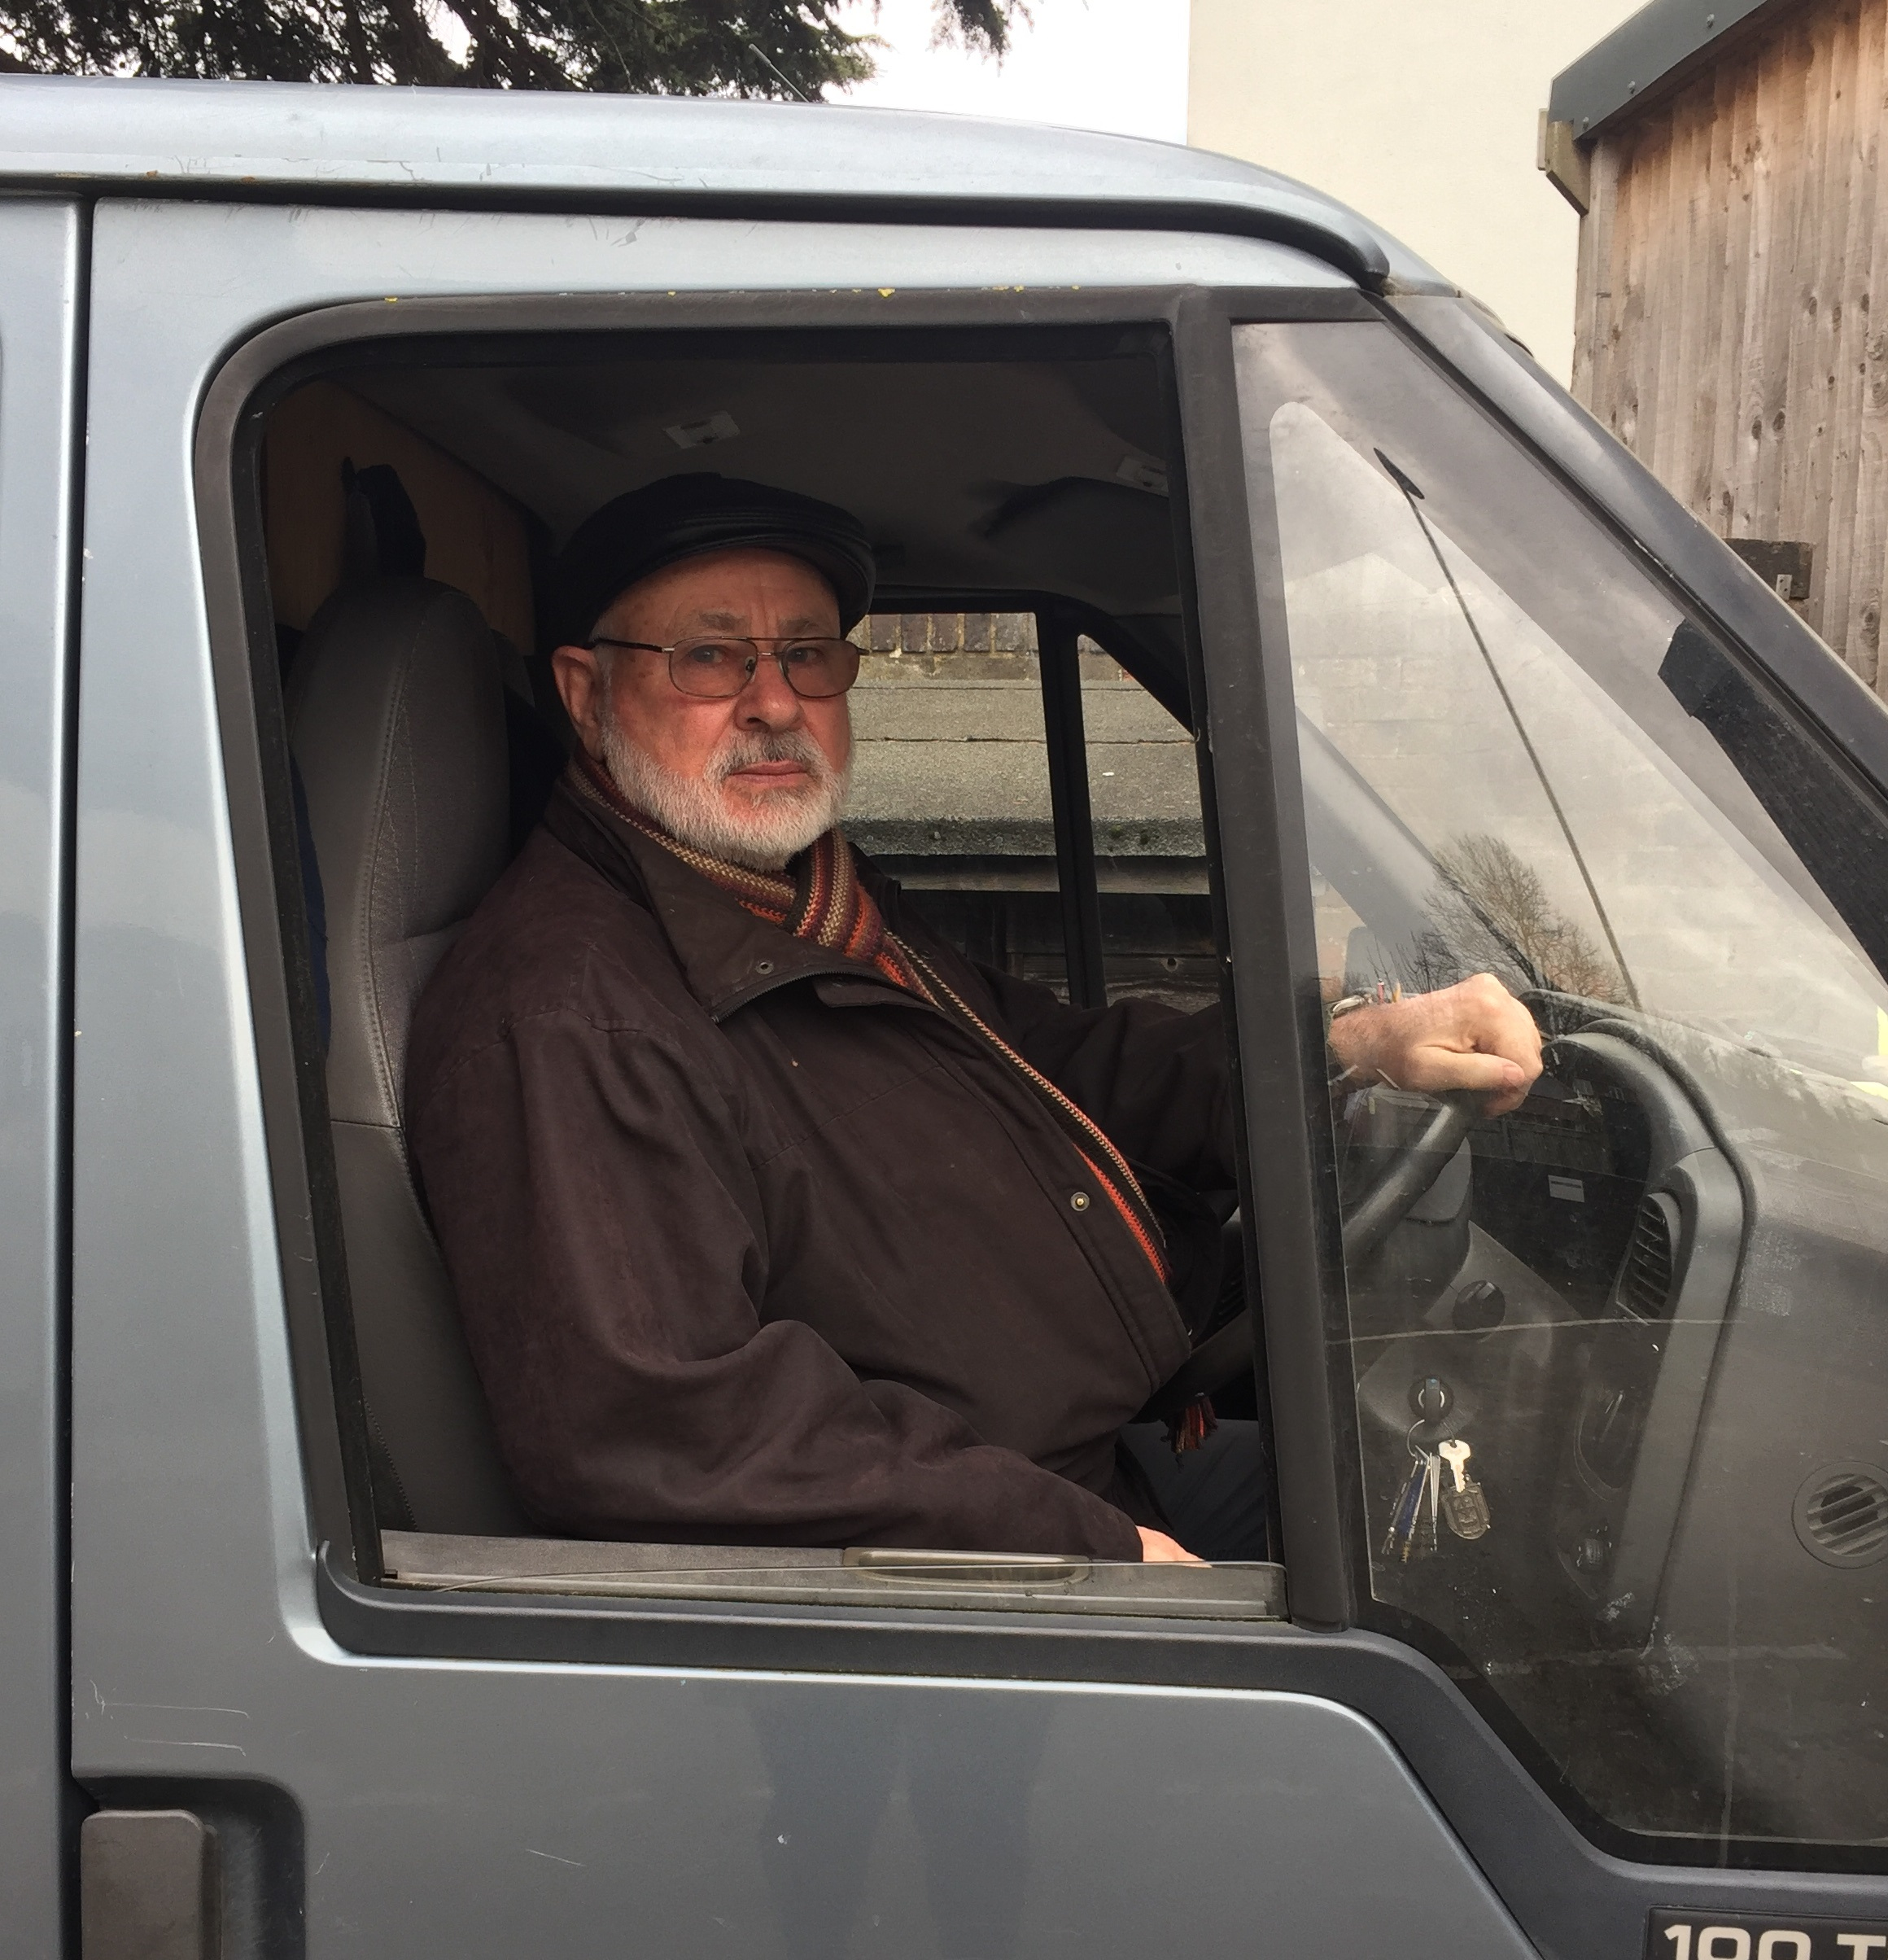 Phil-in-his-van---Copy.JPG